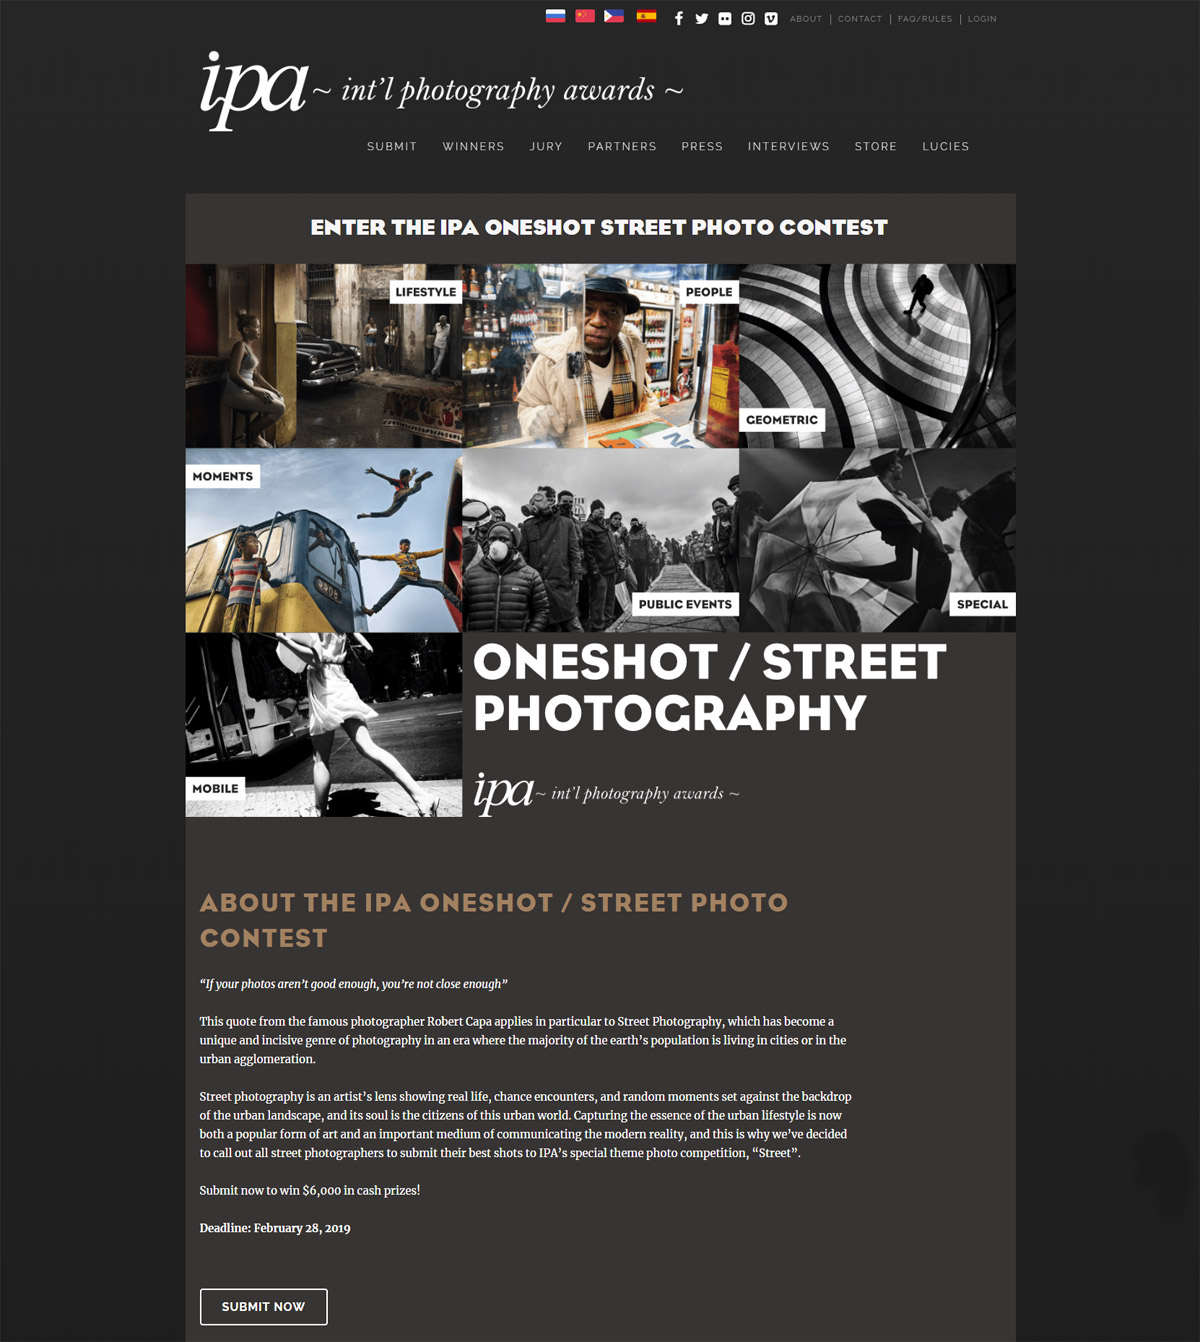 IPA Oneshot Street Photo Contest